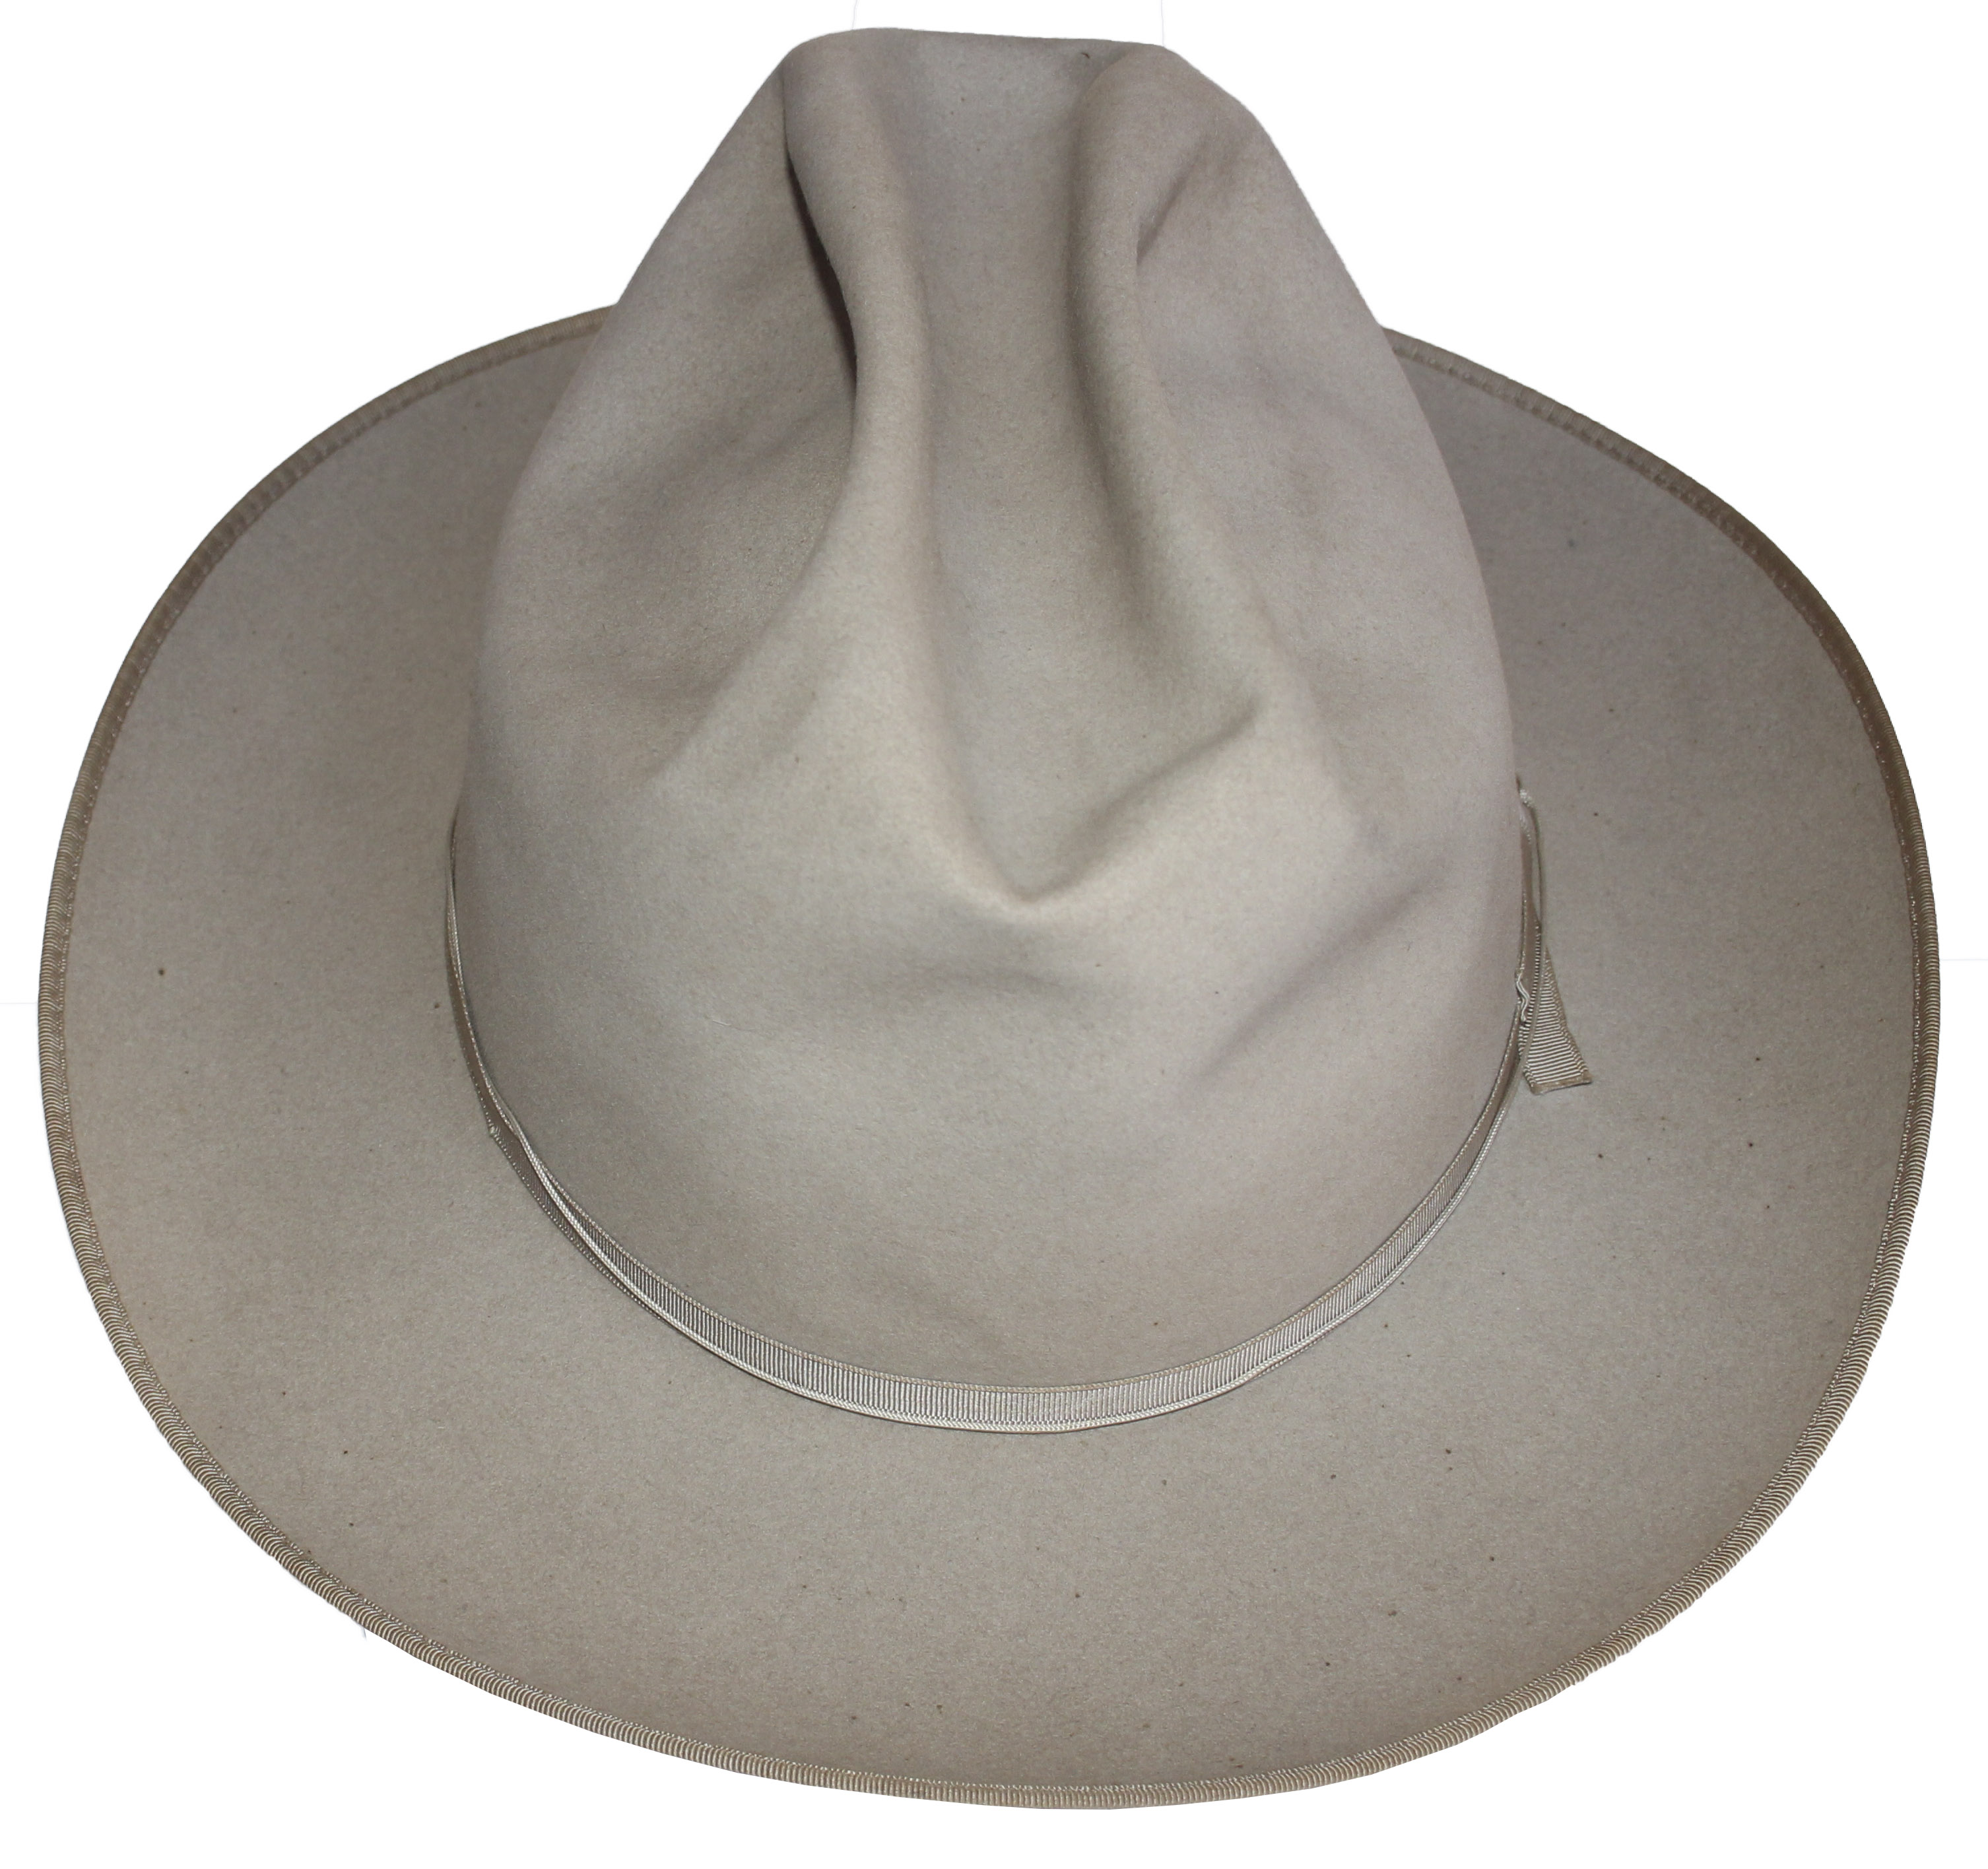 dc726740117 ... Dwight Eisenhower s Personally Own   Worn Stetson Hat -- Worn by Eisenhower  While Hunting ...